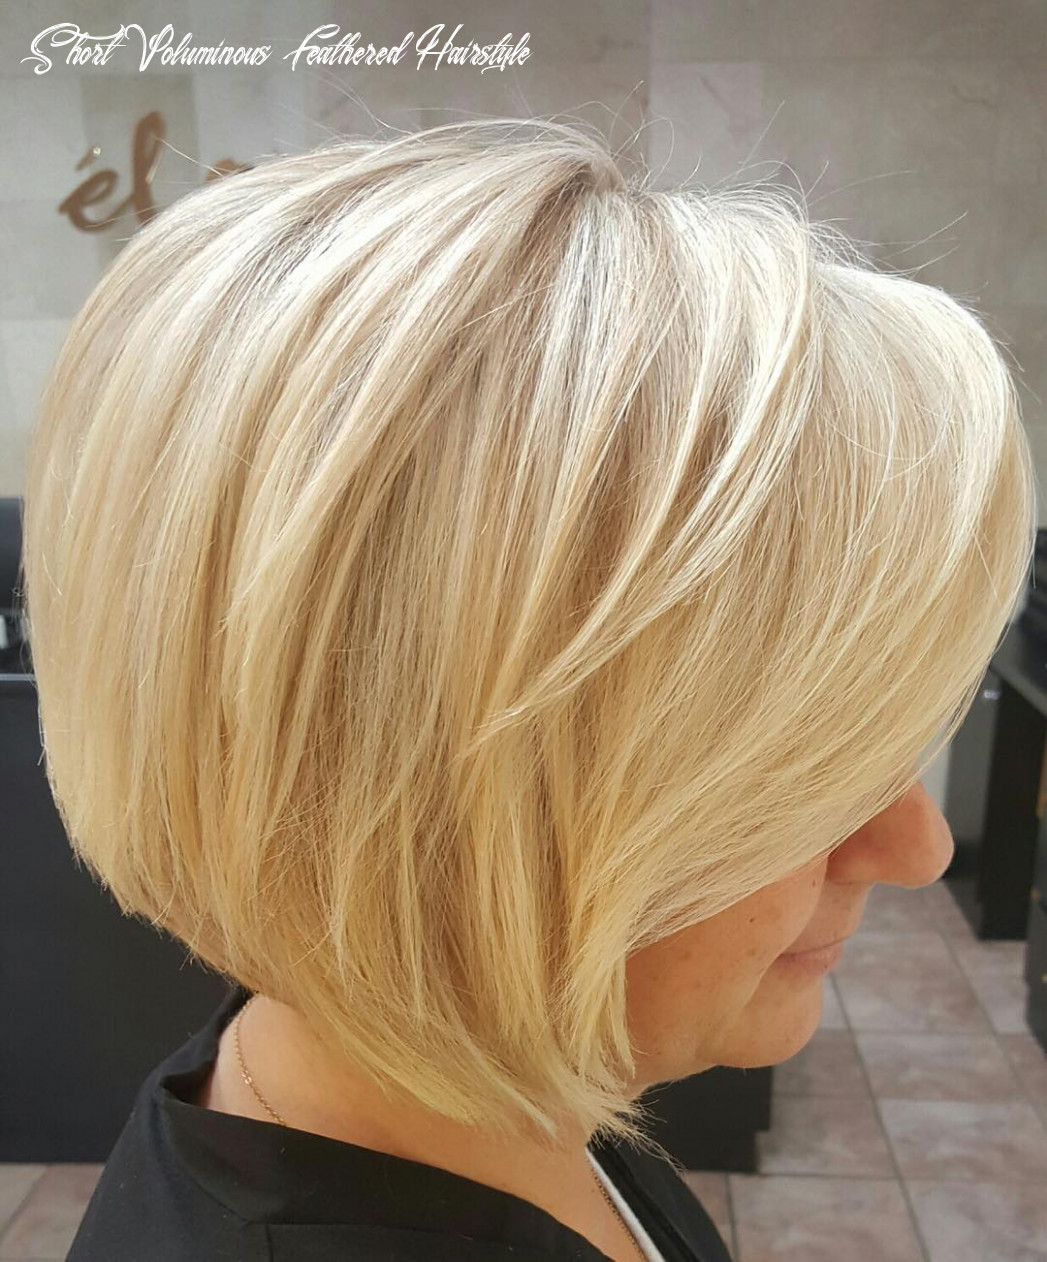 11 short layered bob hairstyles [which one is the best to choose?] short voluminous feathered hairstyle